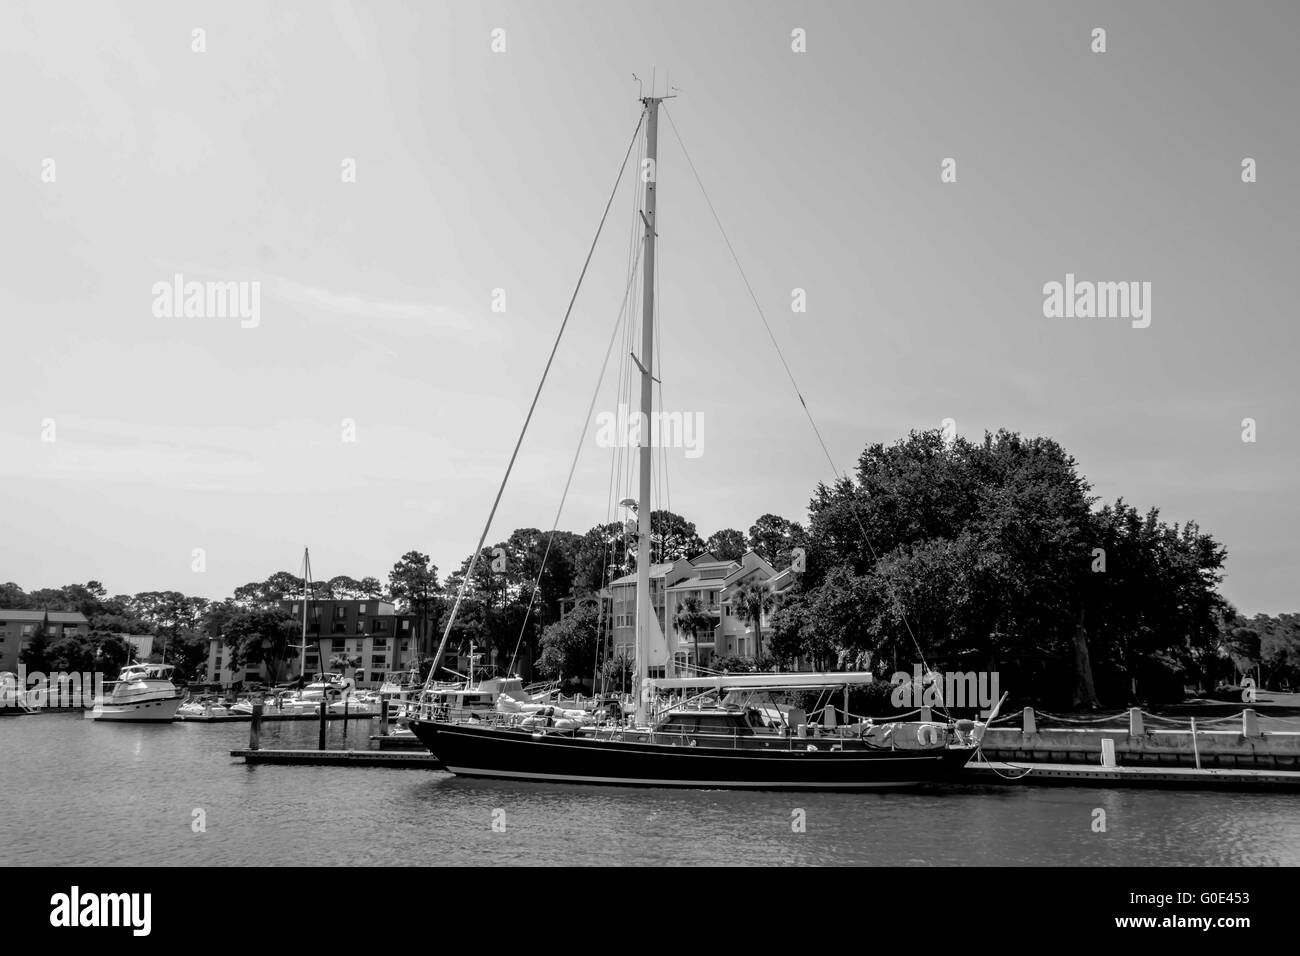 boats in harbour town of south beach hilton head - Stock Image